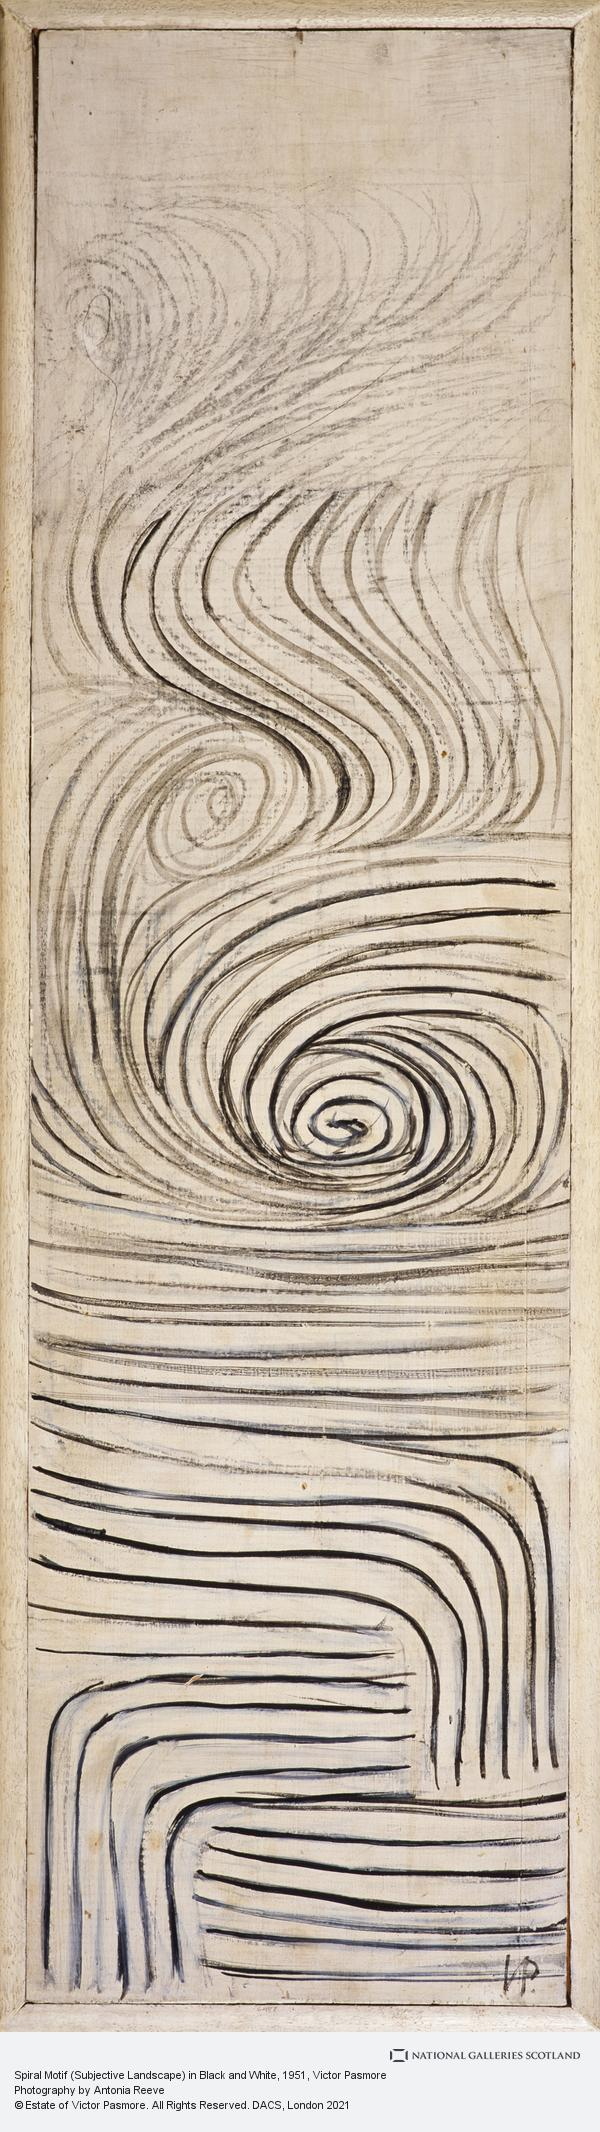 Victor Pasmore, Spiral Motif (Subjective Landscape) in Black and White